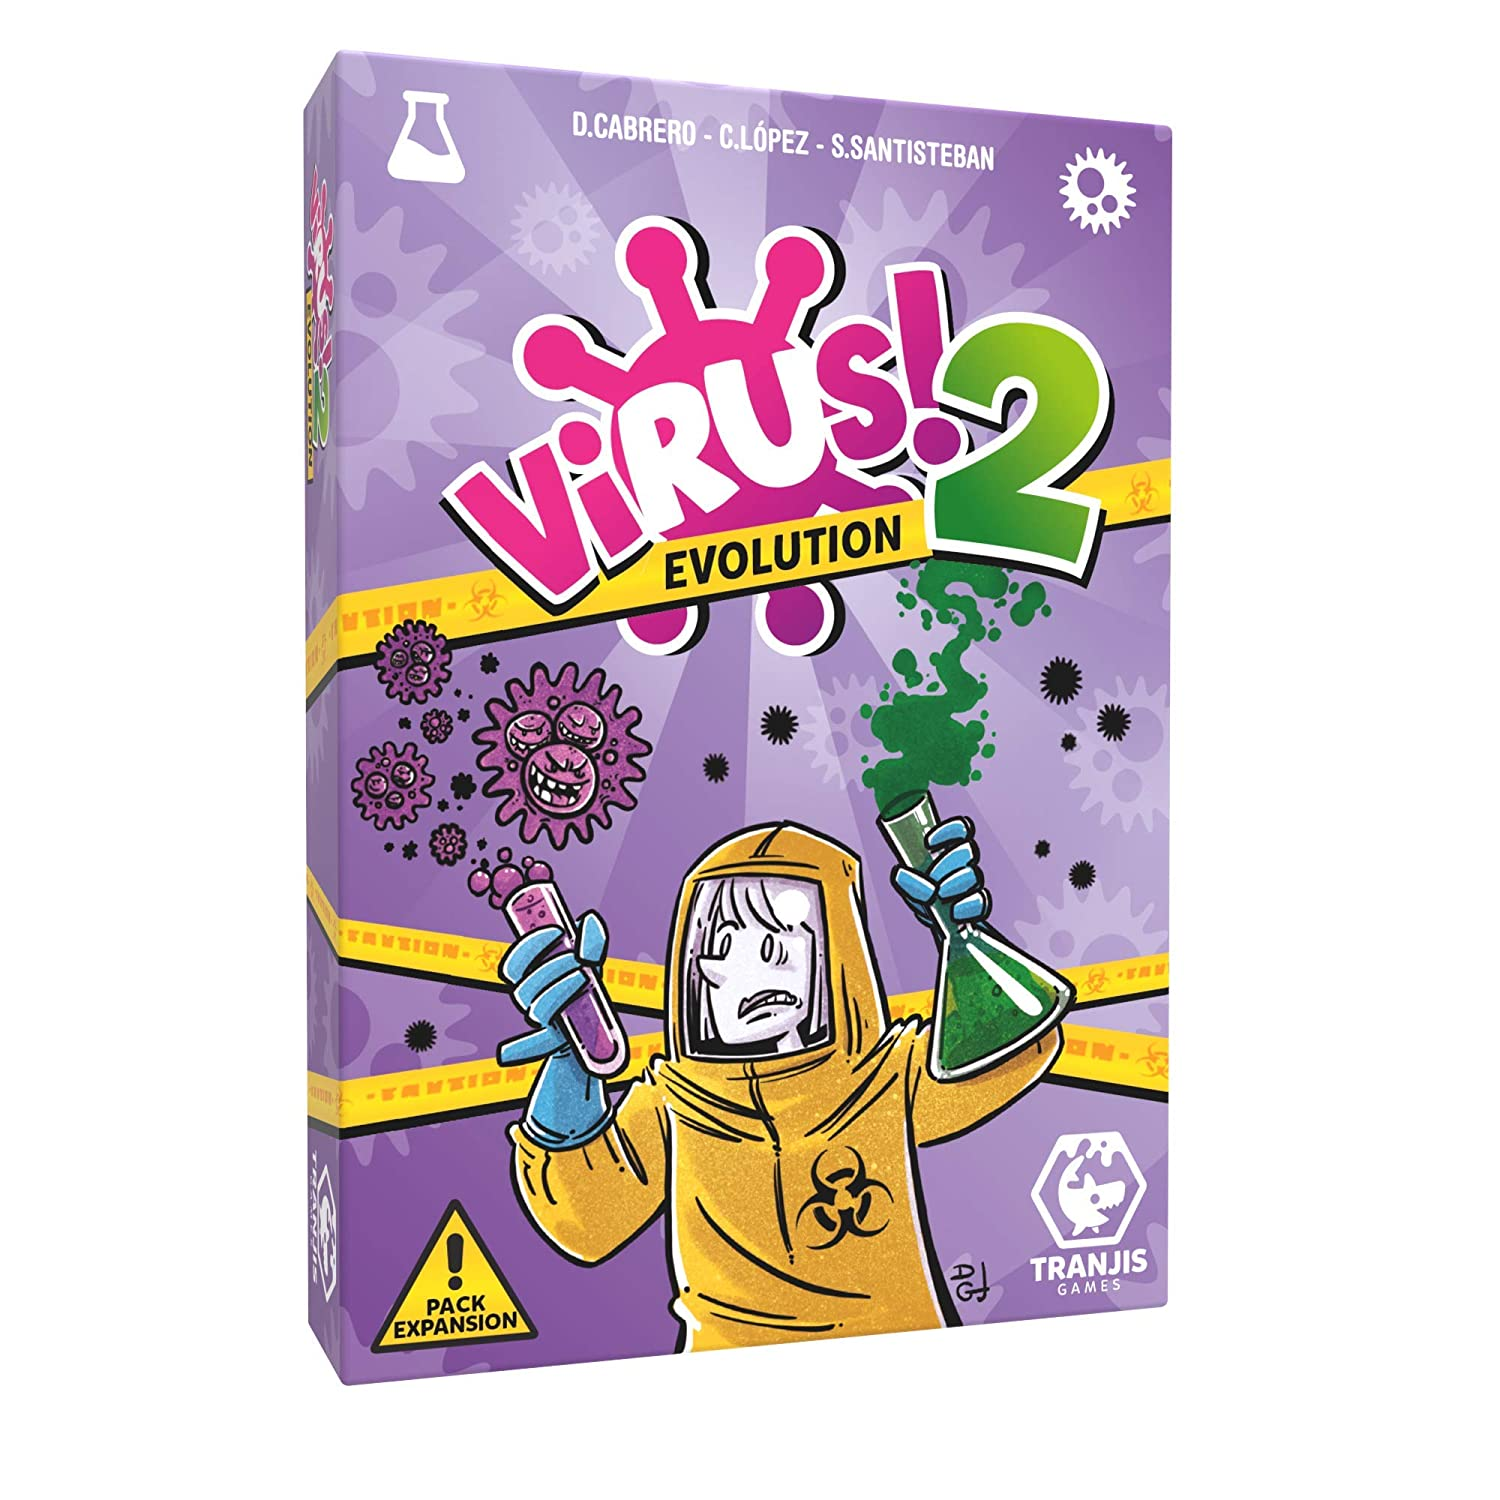 Virus! 2 Evolution https://amzn.to/2Scapsw